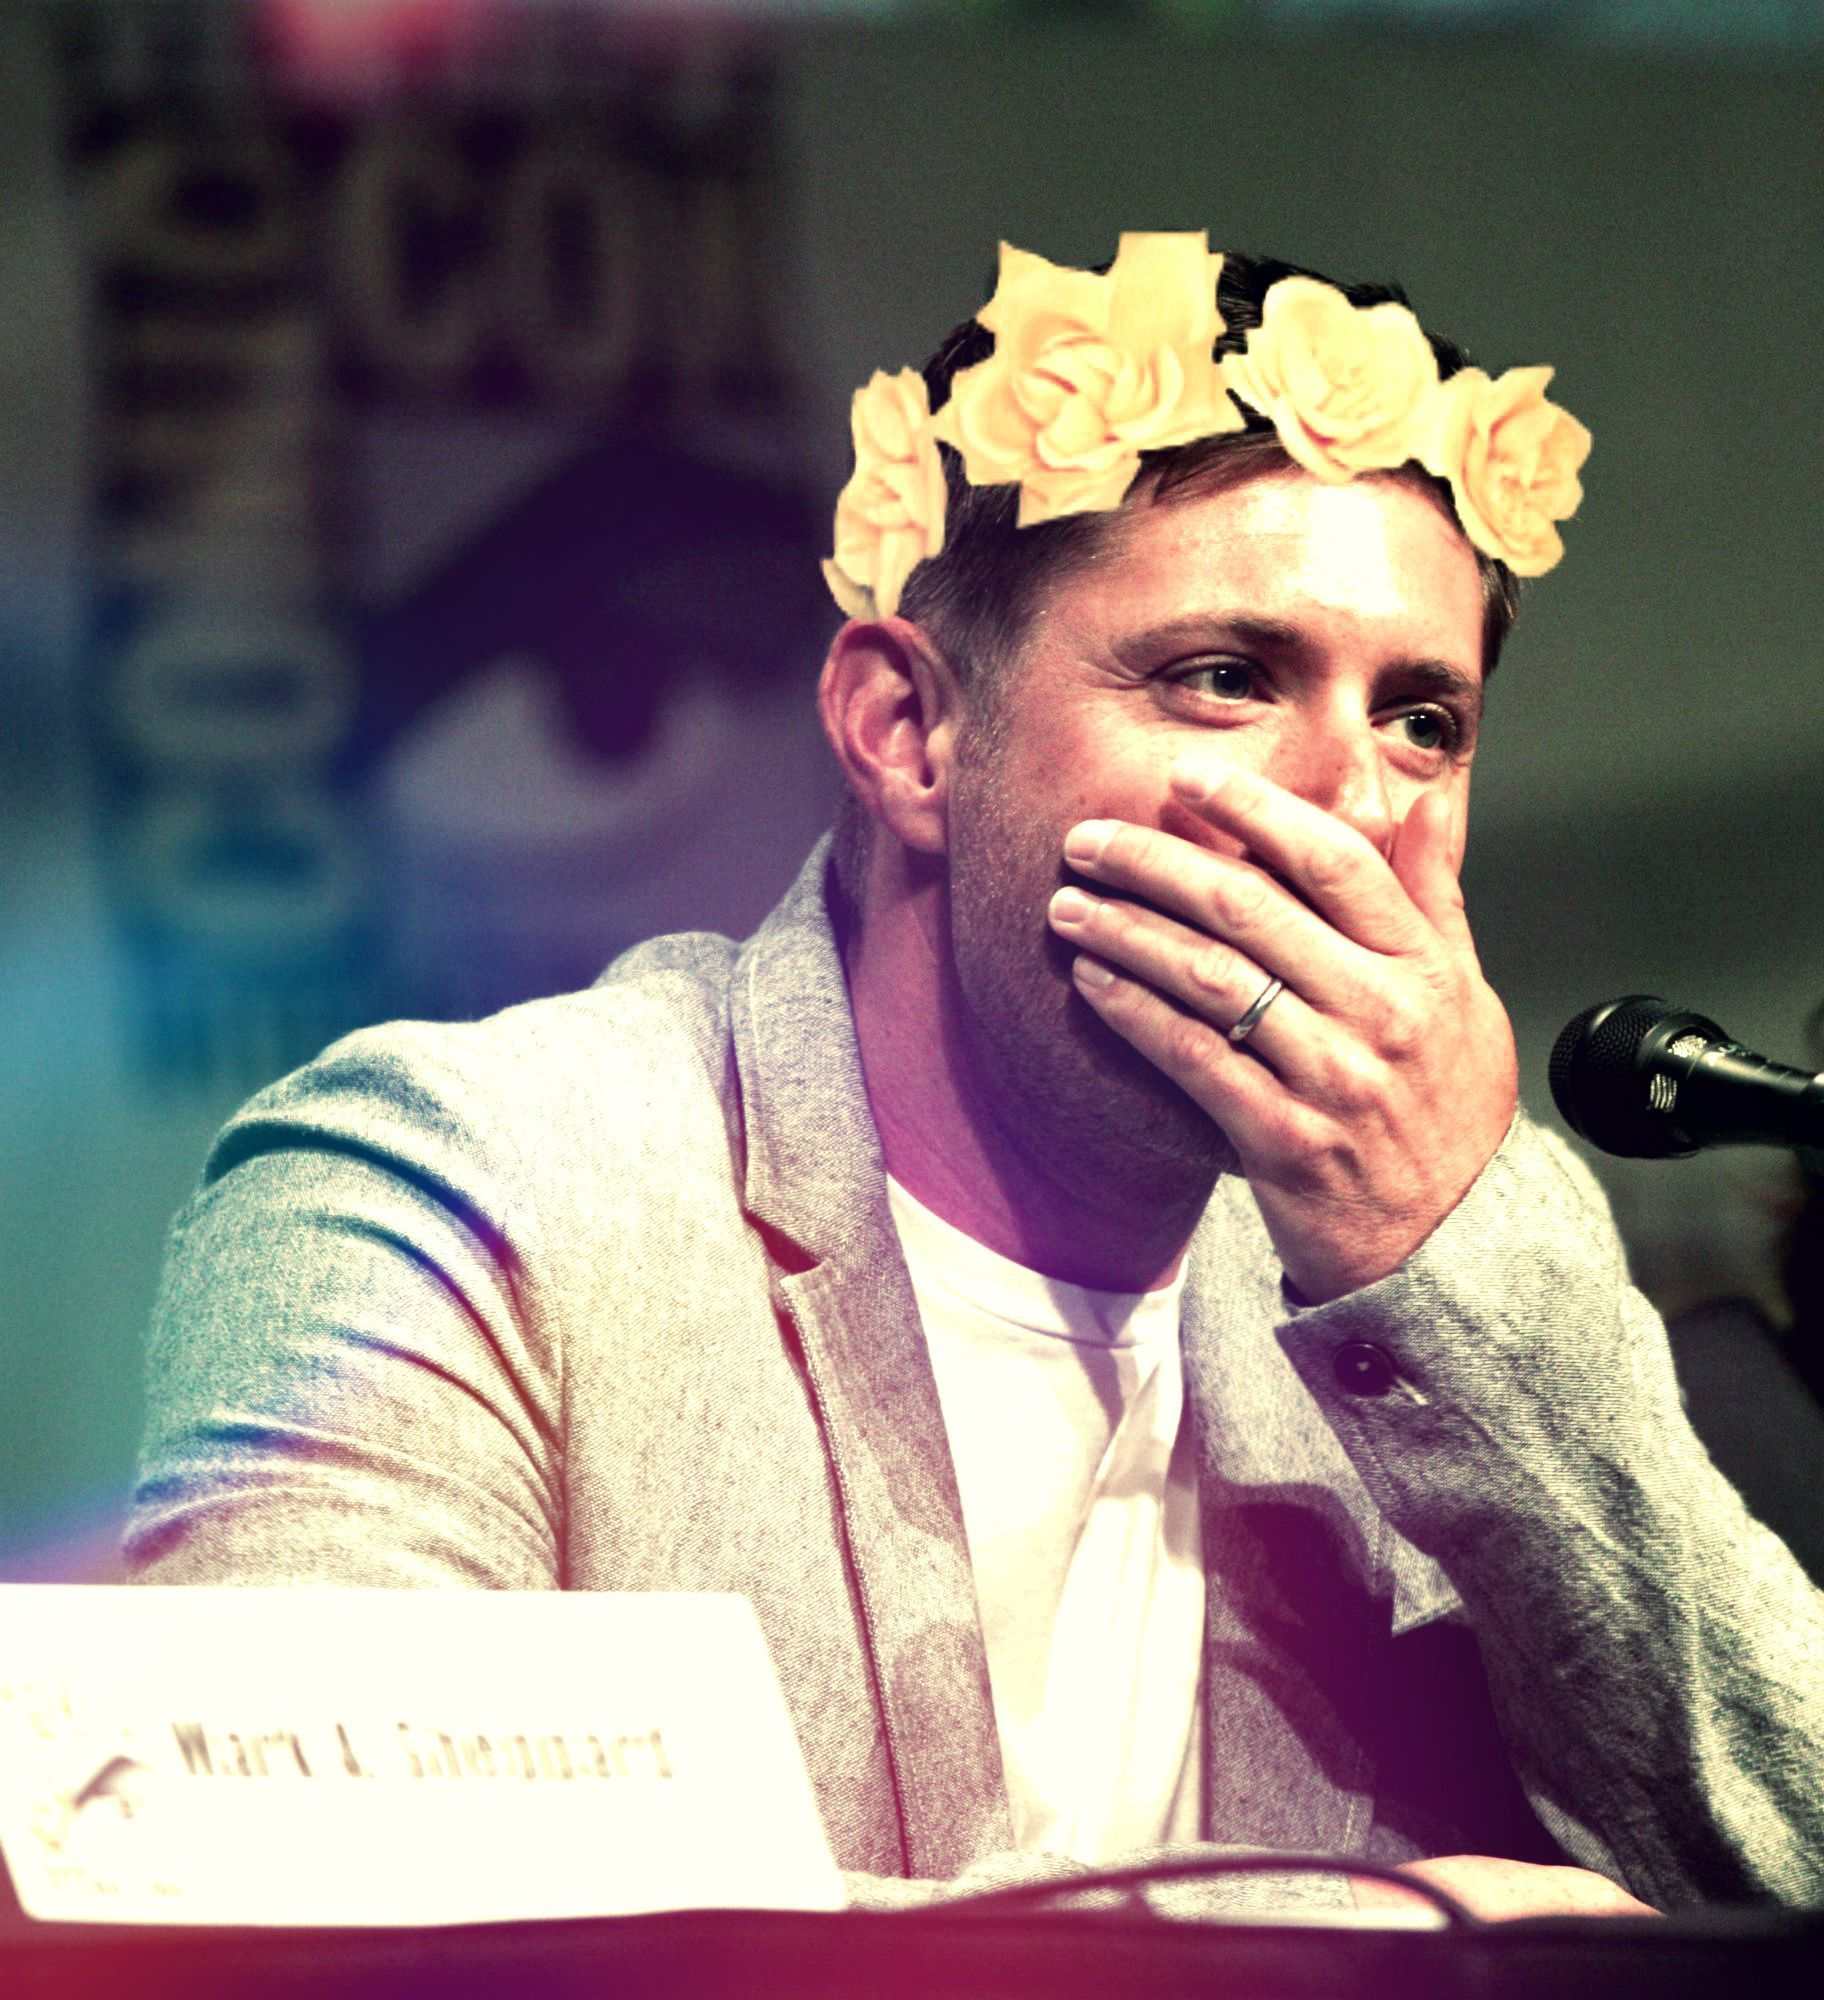 Jensen Ackles Flower Crown